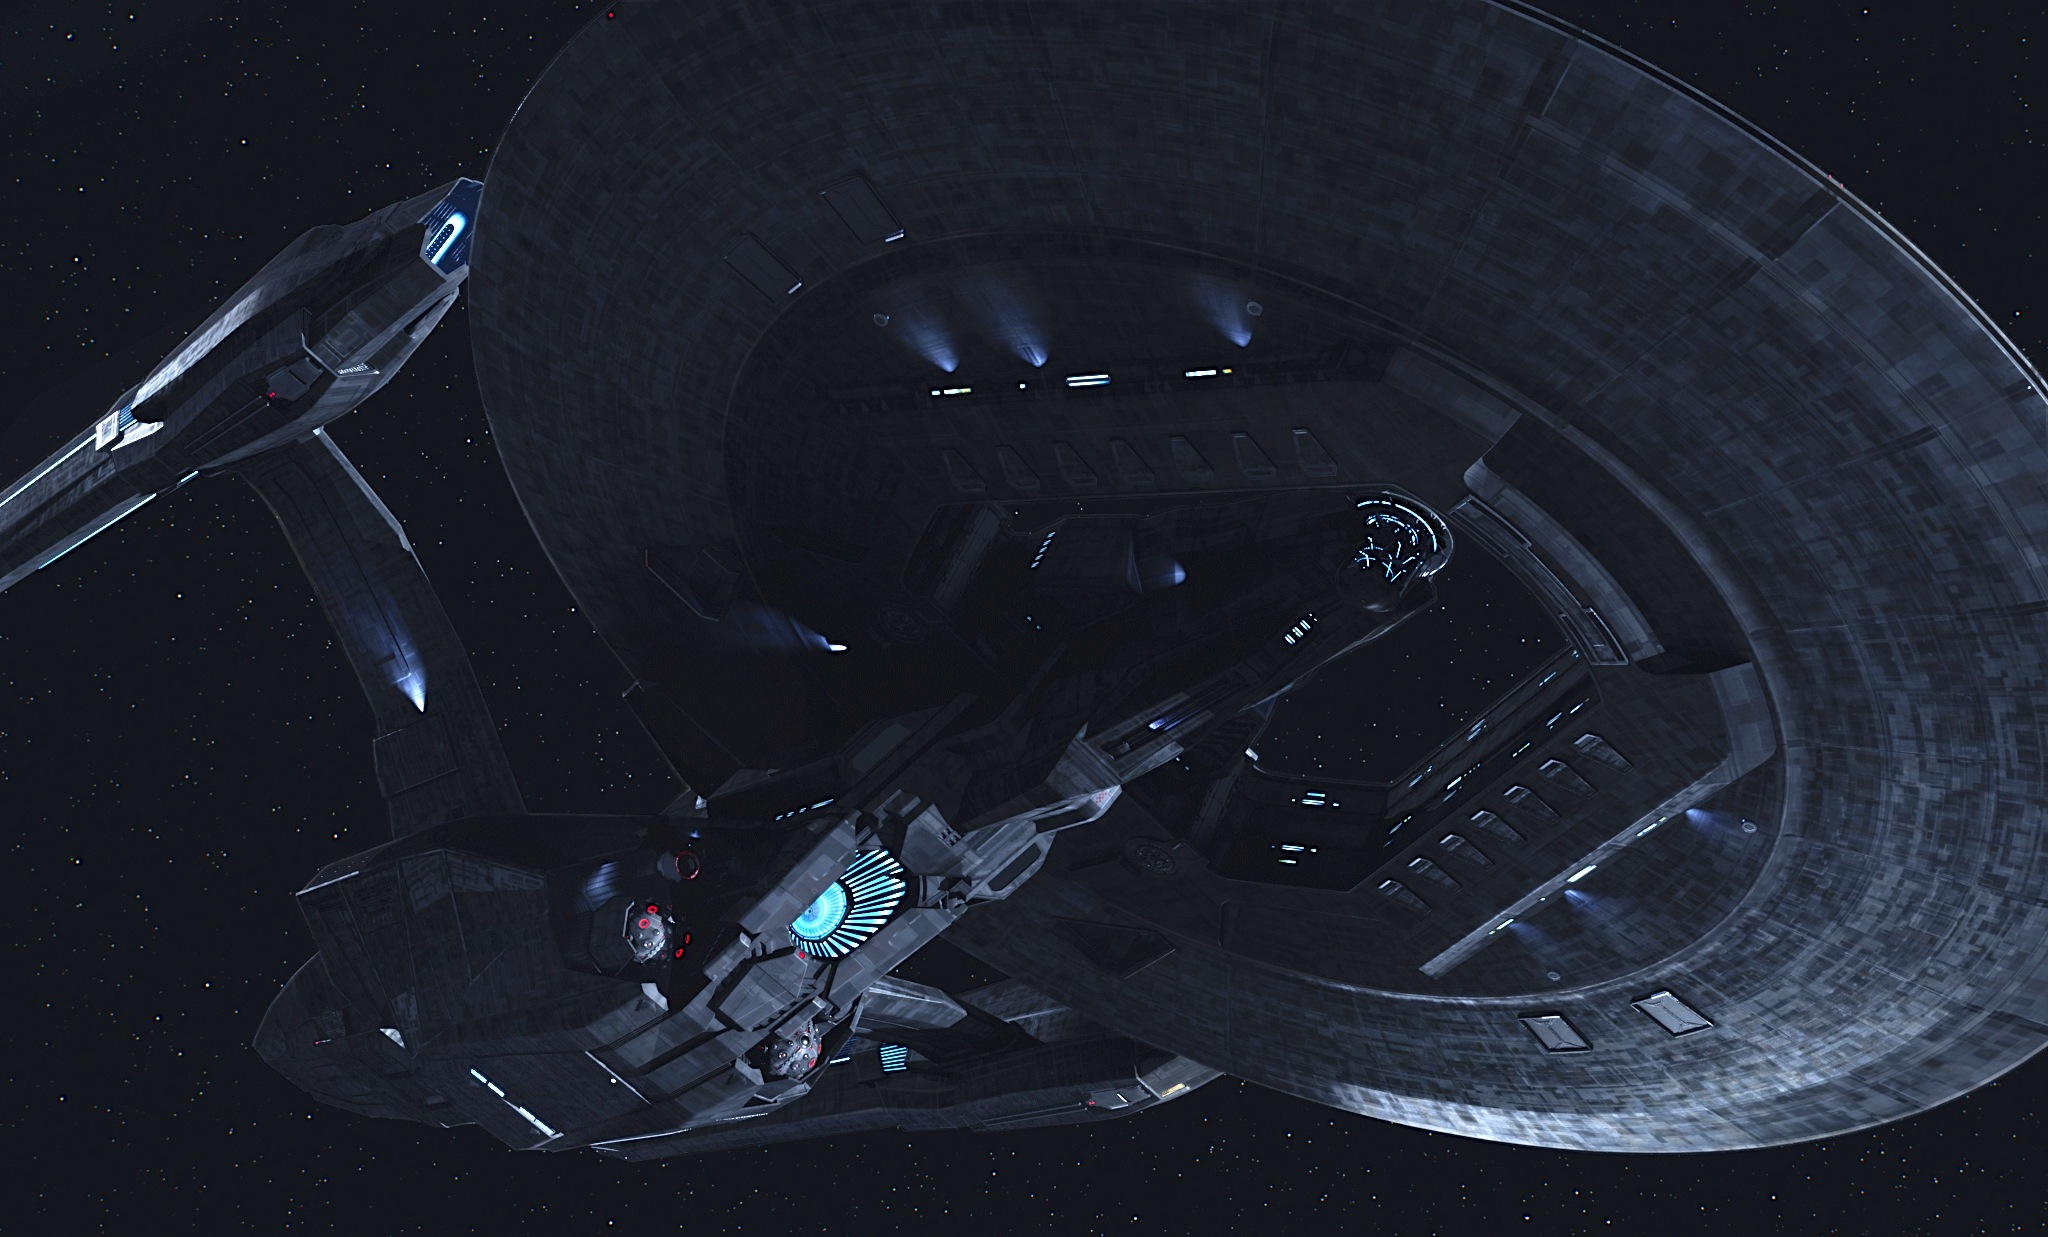 Star Trek Into The Darkness Ship 2048x1237 Wallpaper Teahub Io